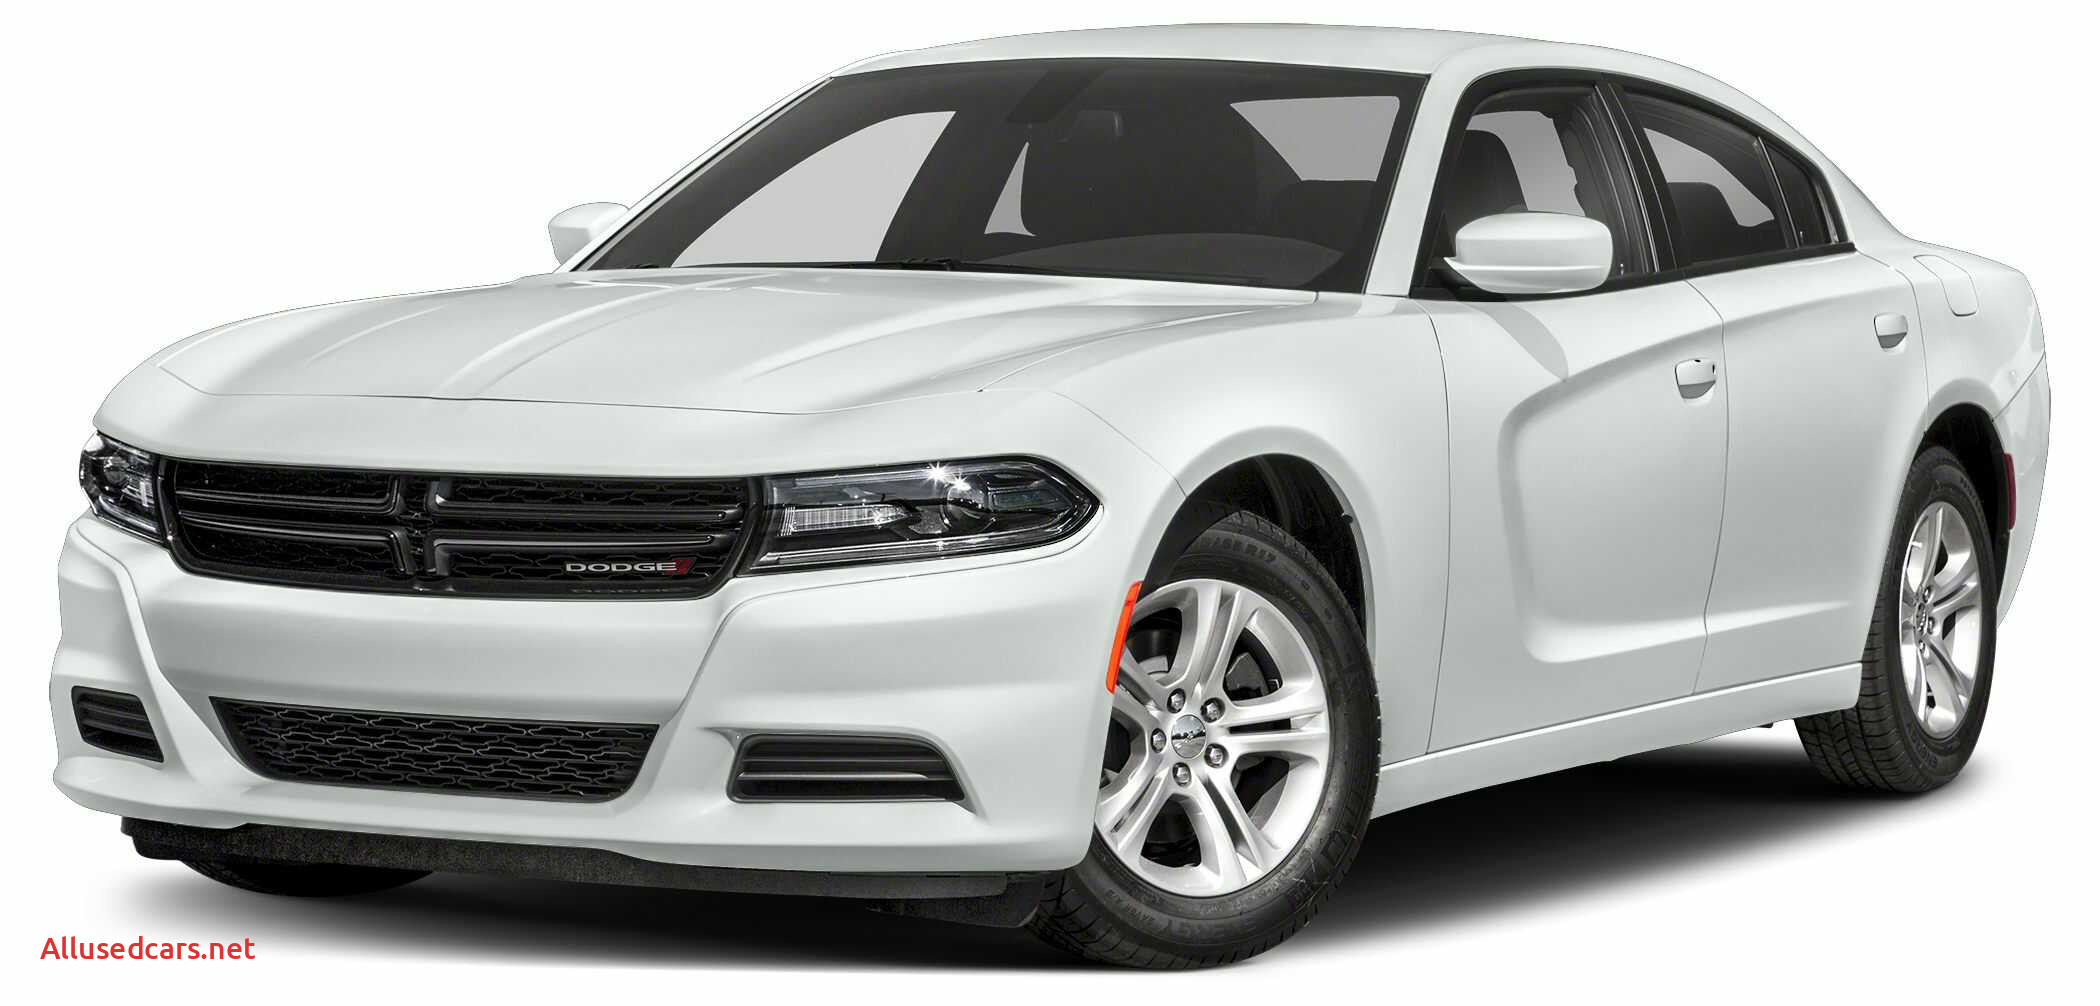 Used Cars for Sale 07882 Luxury Search for New and Used Dodge for Sale In Maplewood Nj Page 7